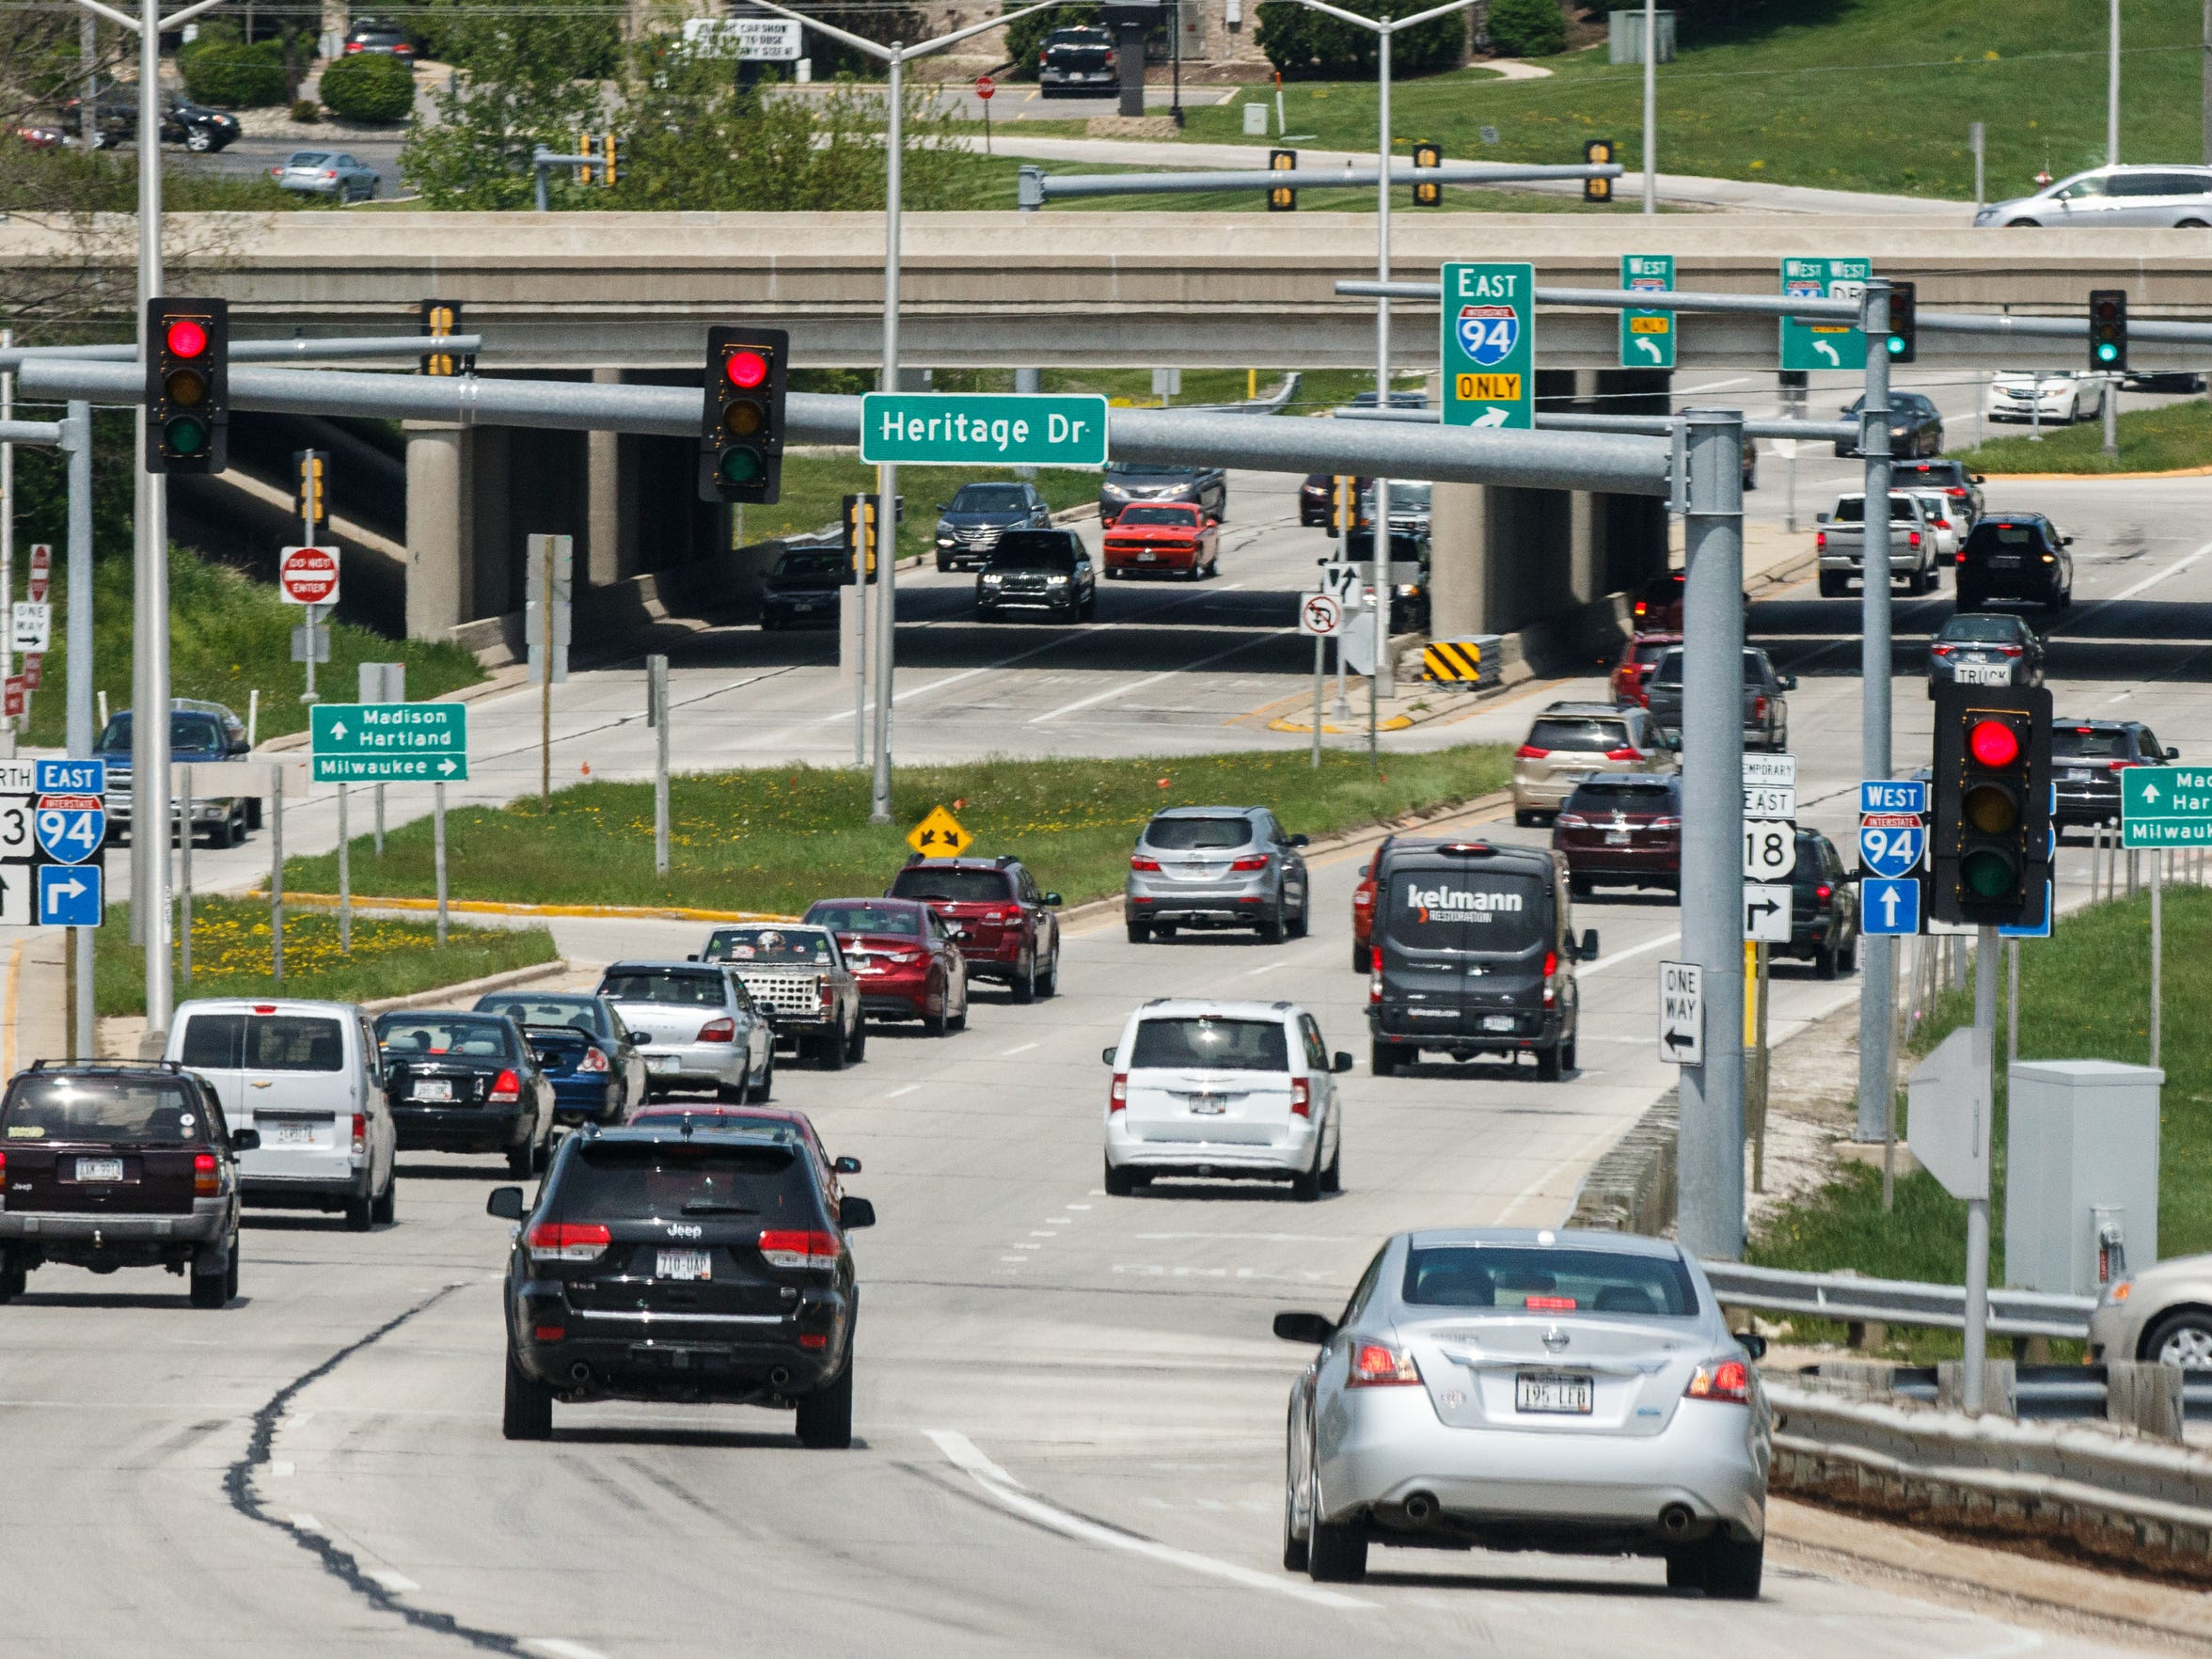 The intersection of Interstate 94 and Highway 83 in Delafield is the third most crash-prone intersection in the area as seen on Friday, May 18, 2018.